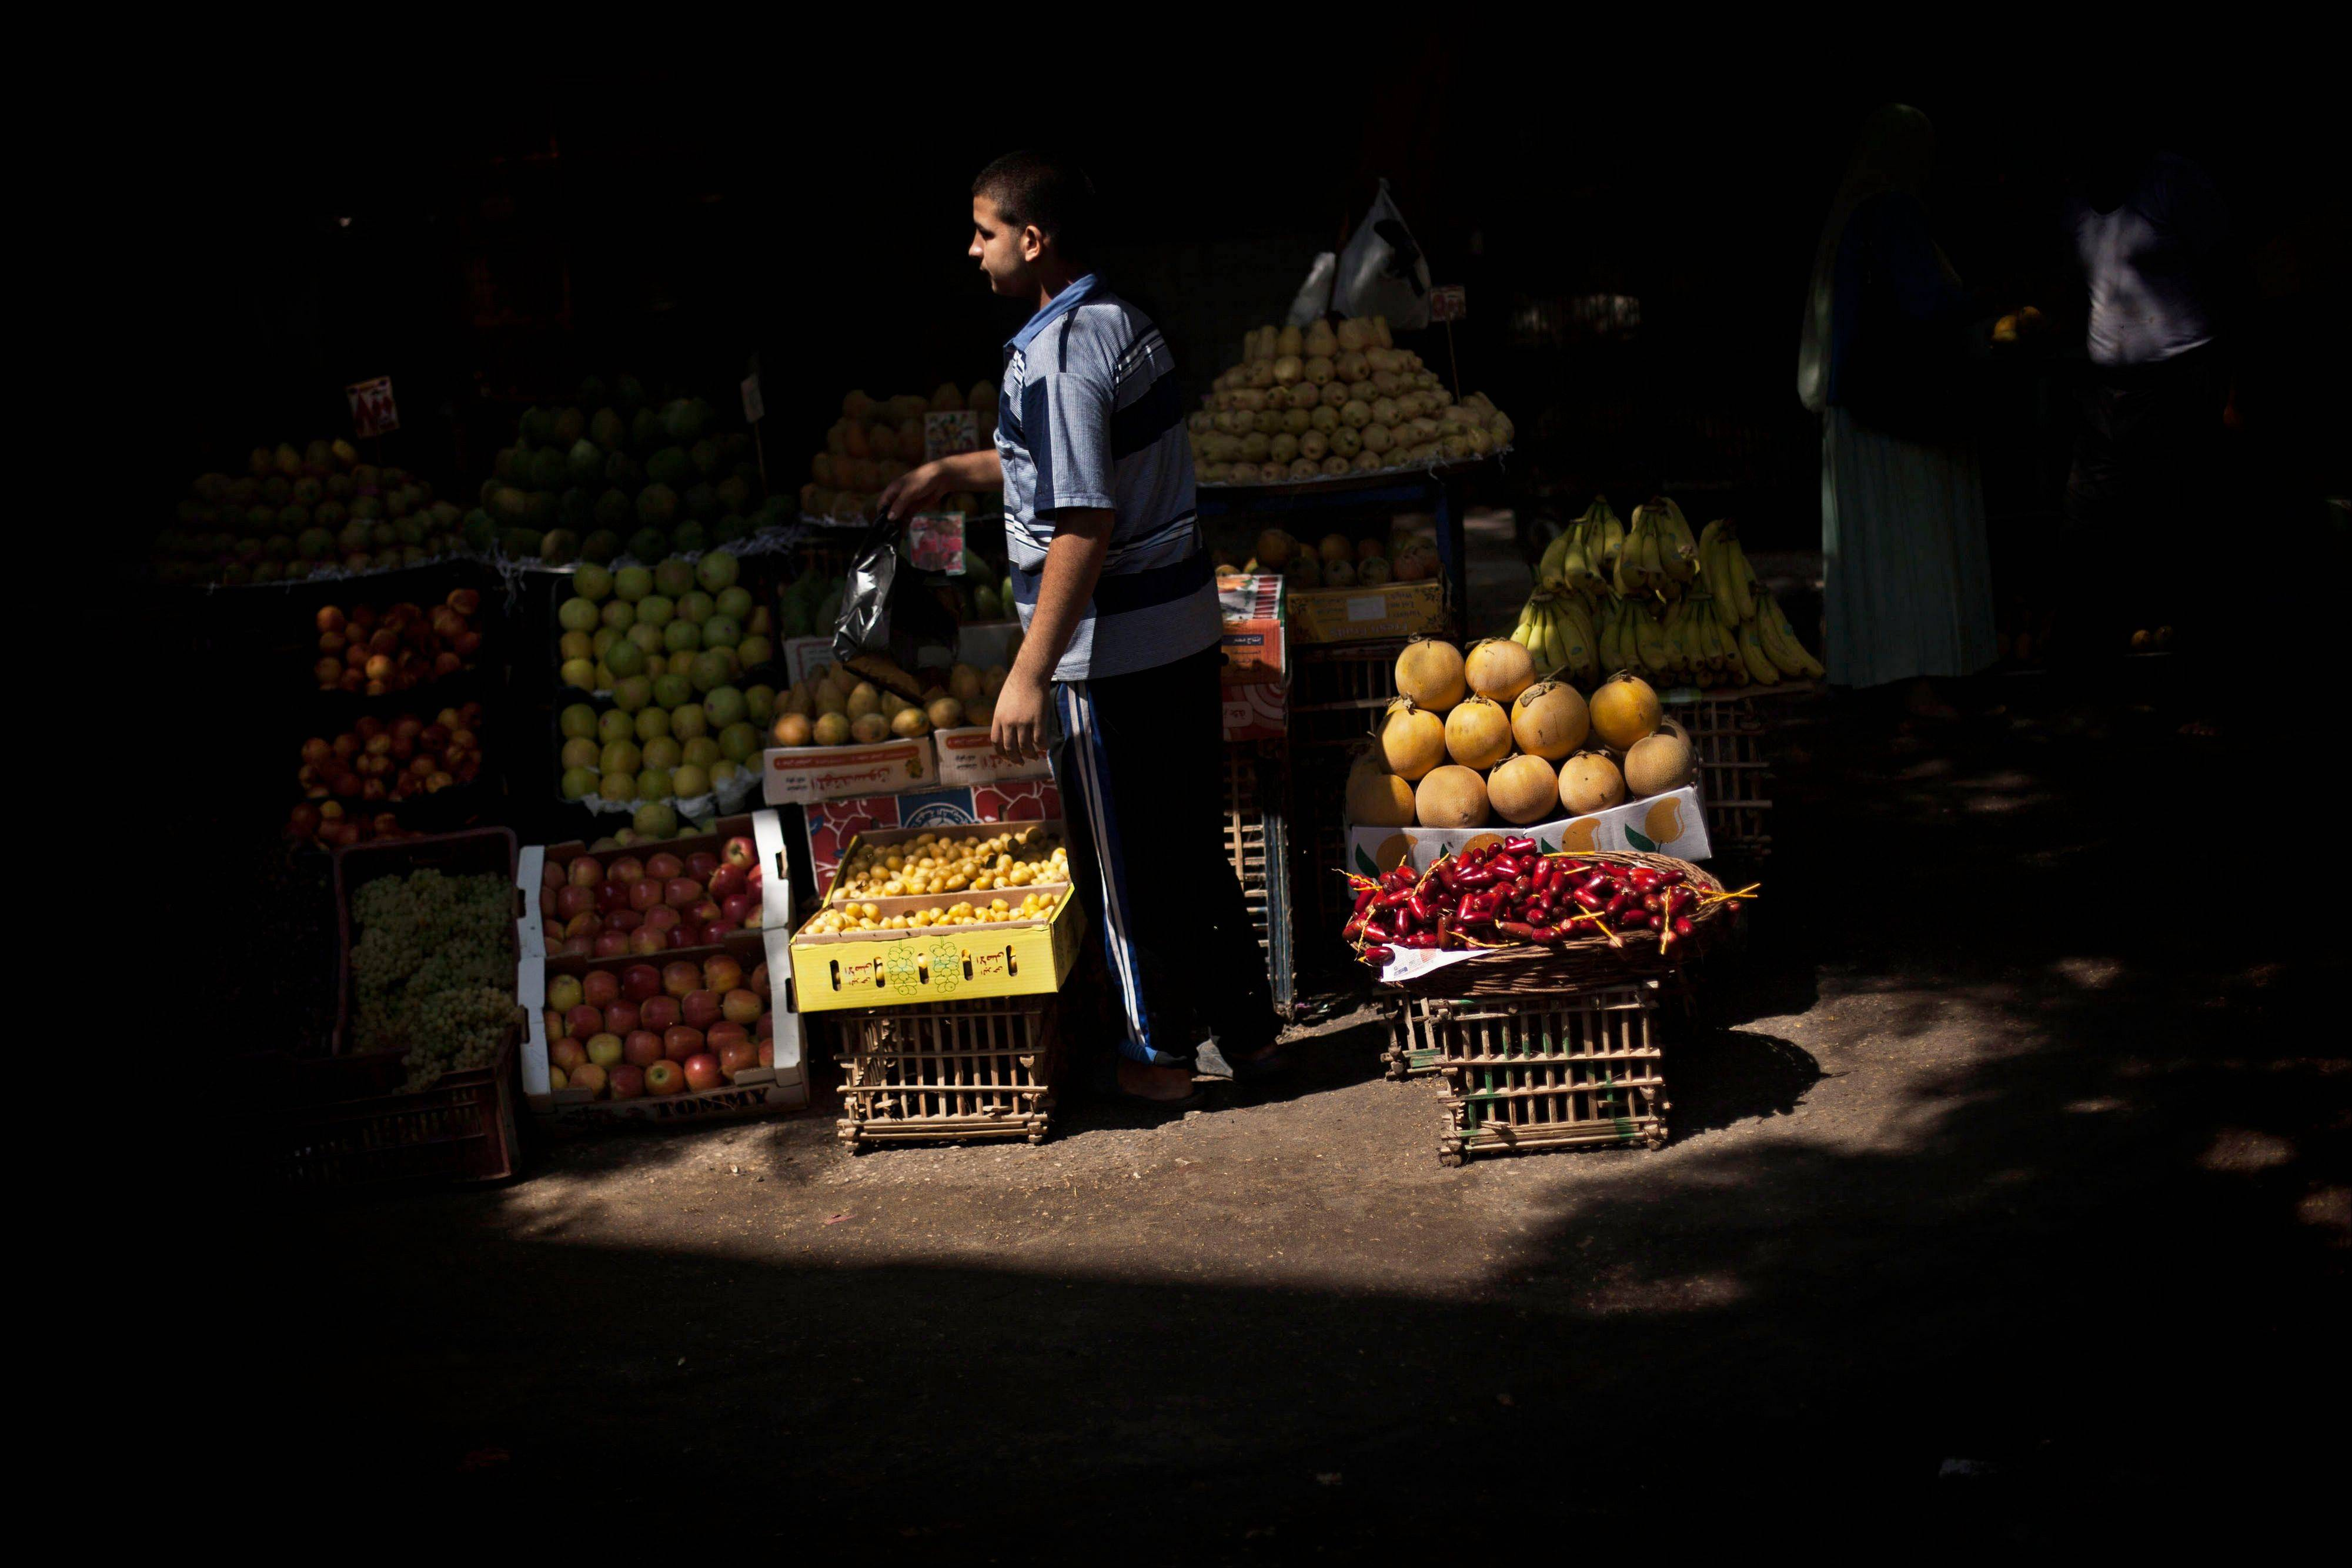 A fruit vendor waits for customers at Suleiman Gohar market in Dokki district in Cairo, Egypt. Egypt's recent turmoil has scared away tourists and†affected the livelihood of the†one in eight Egyptians who earn their living from tourism.